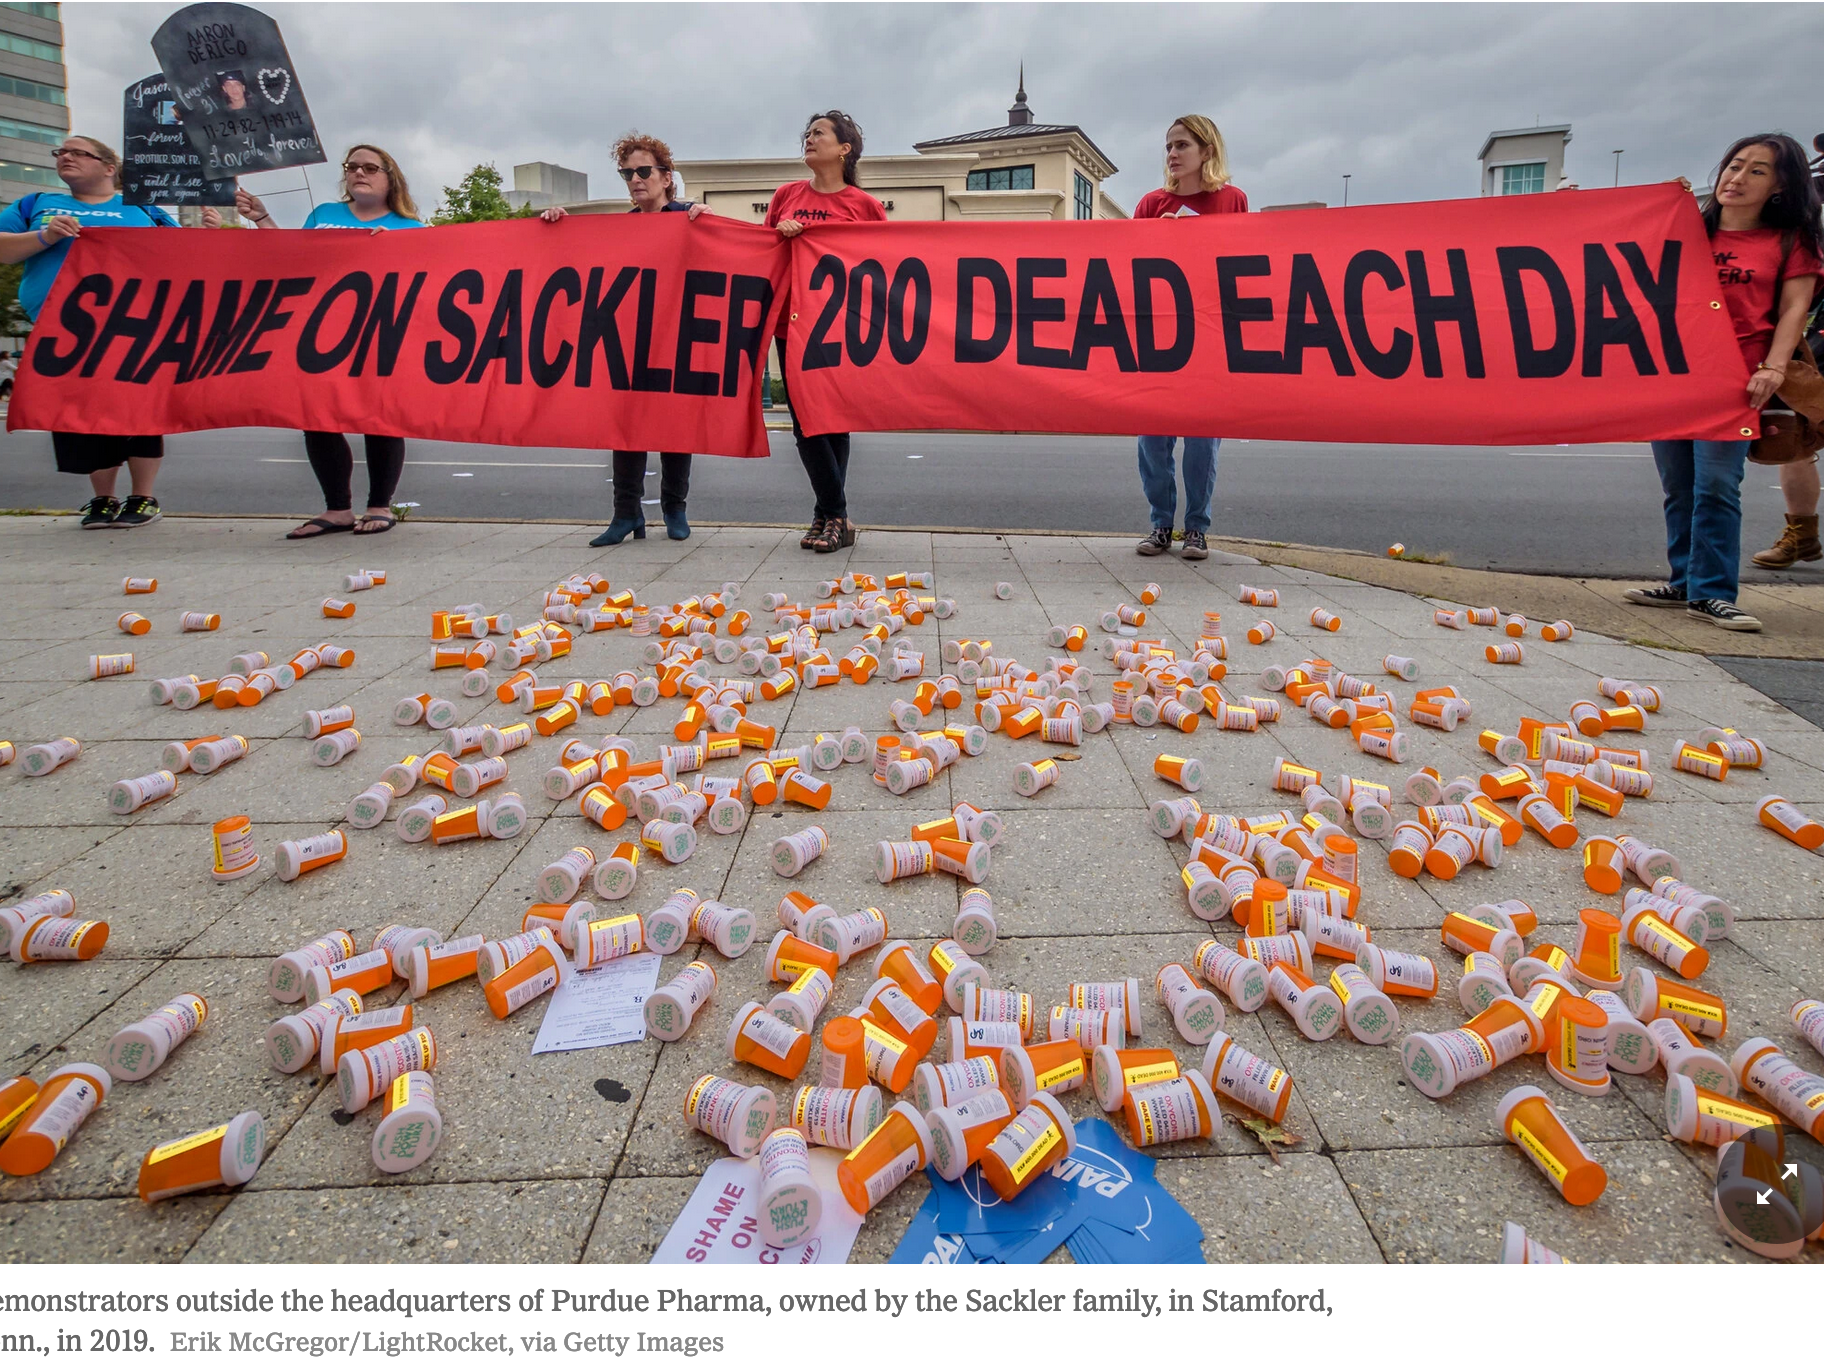 The Sad Sacklers Are Back In the News